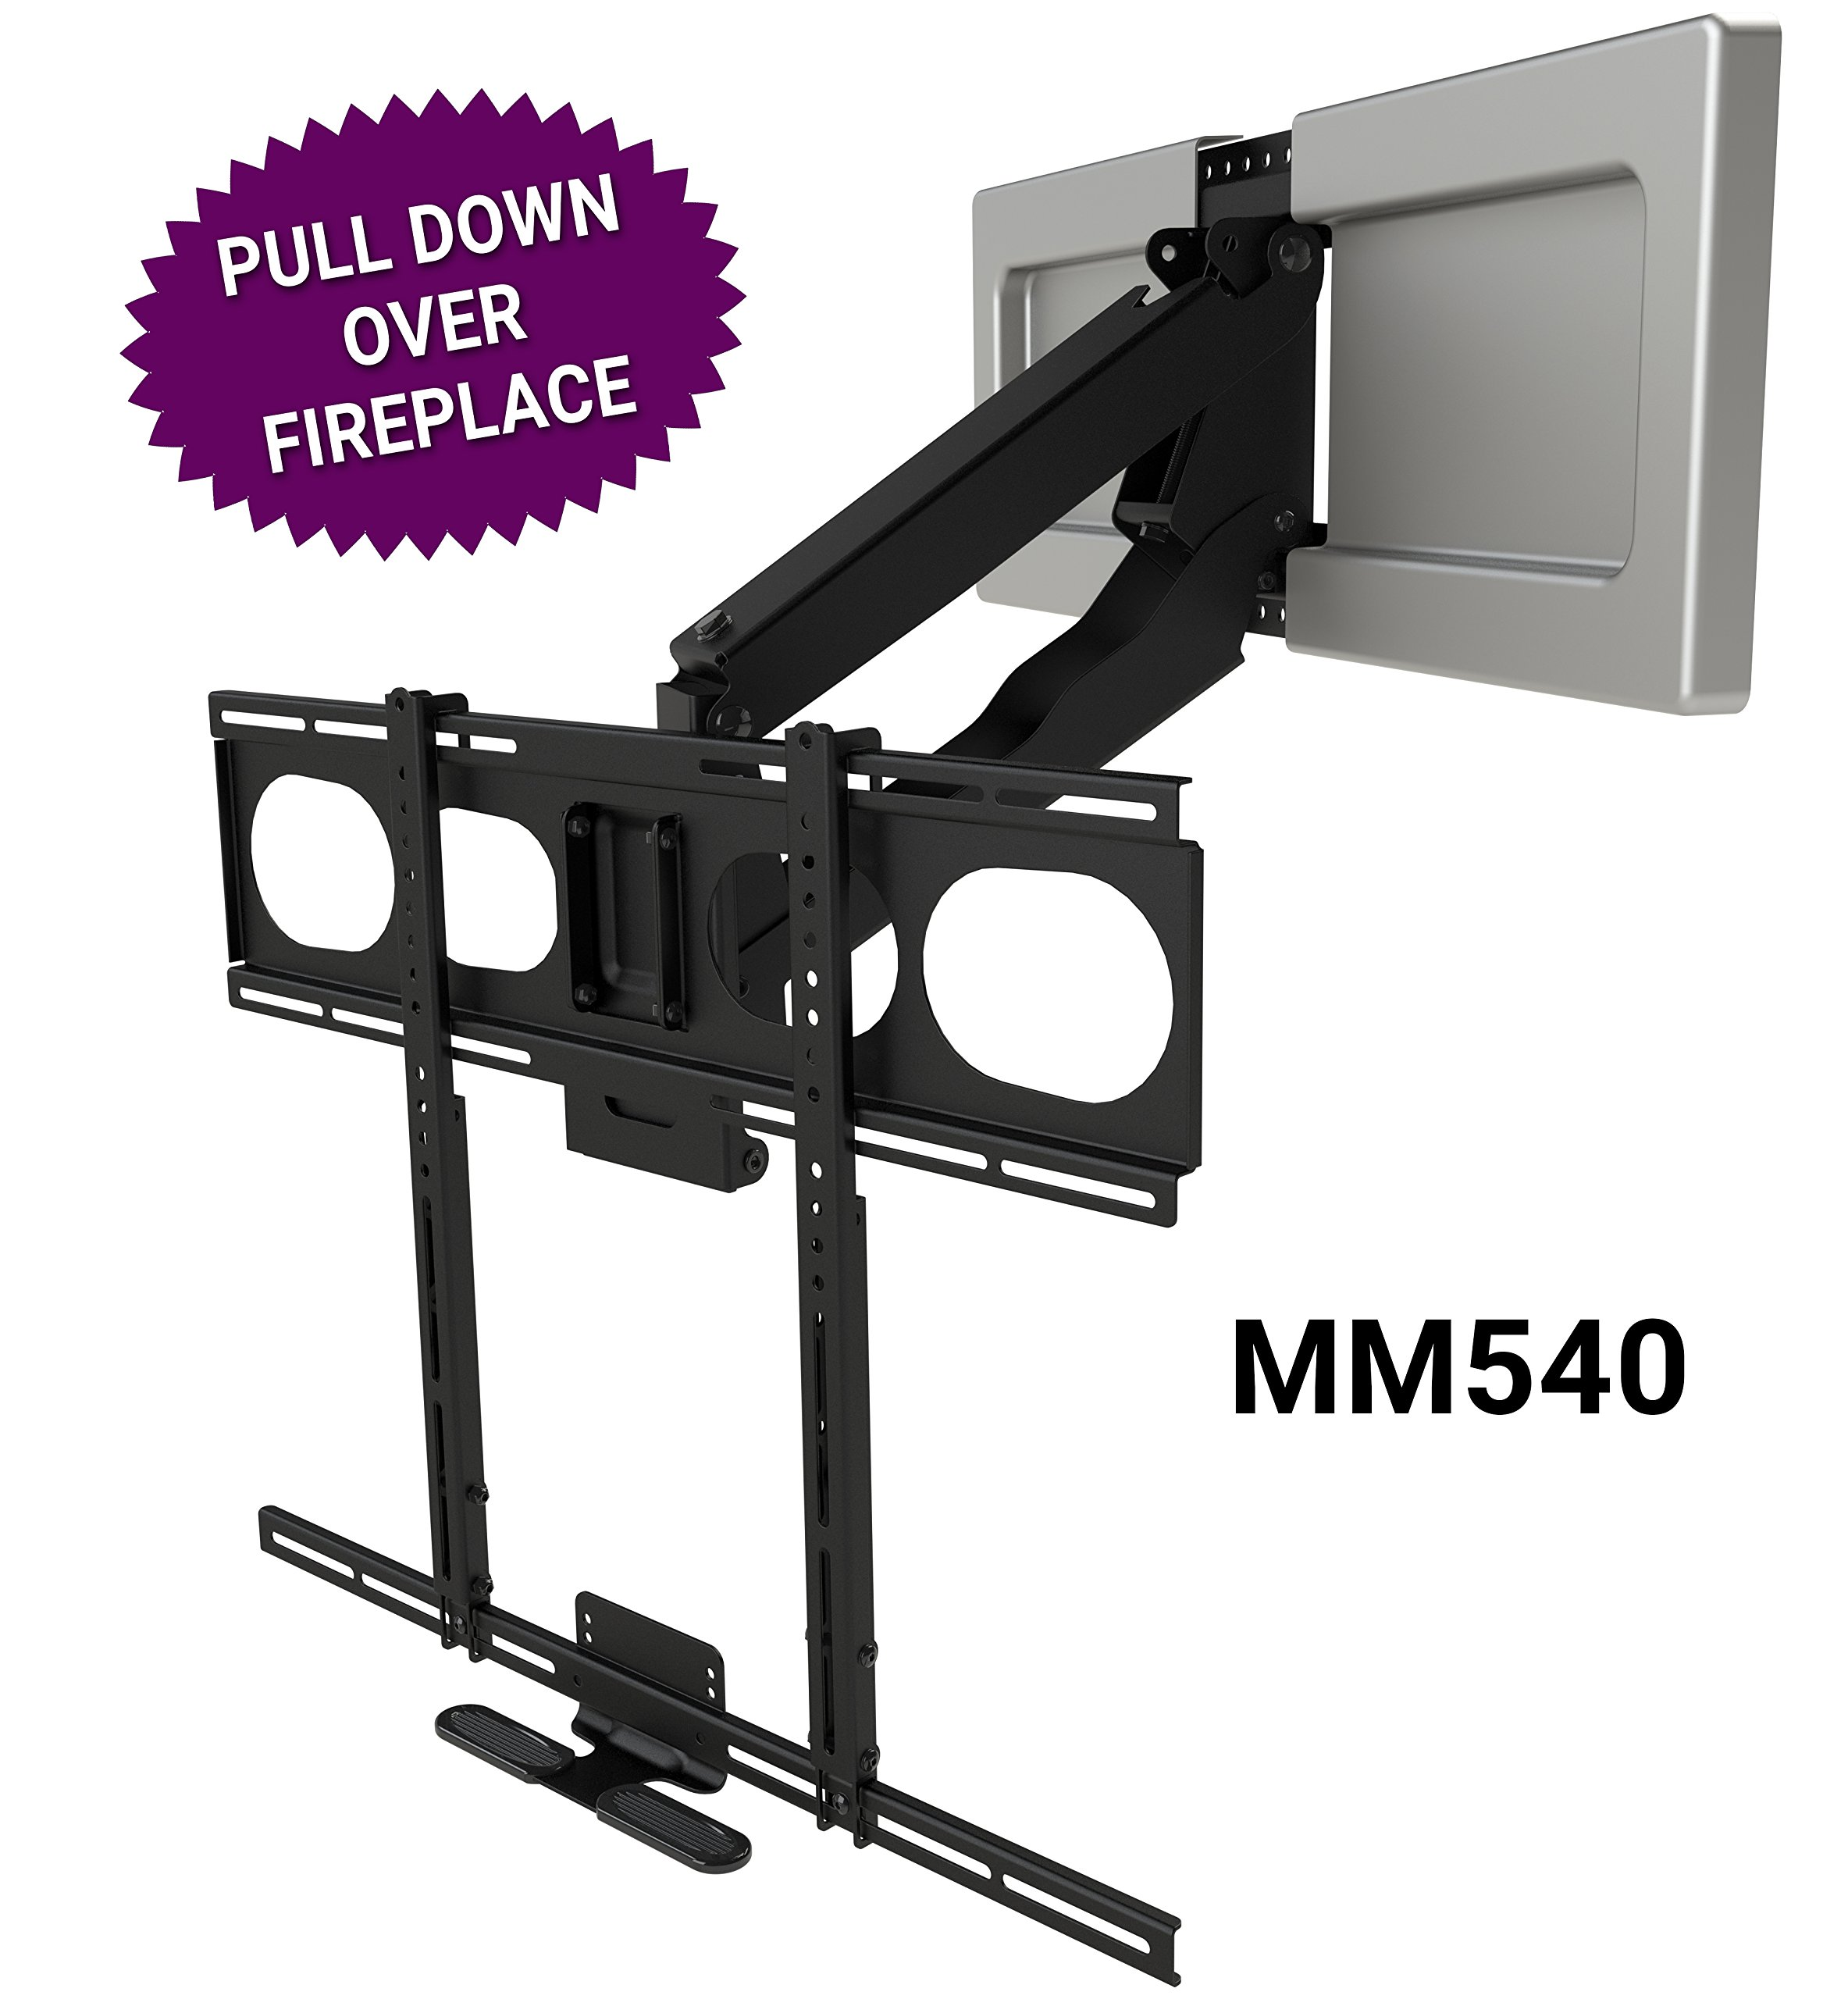 MantelMount MM540 - Above Fireplace Pull Down TV Mount by MantelMount